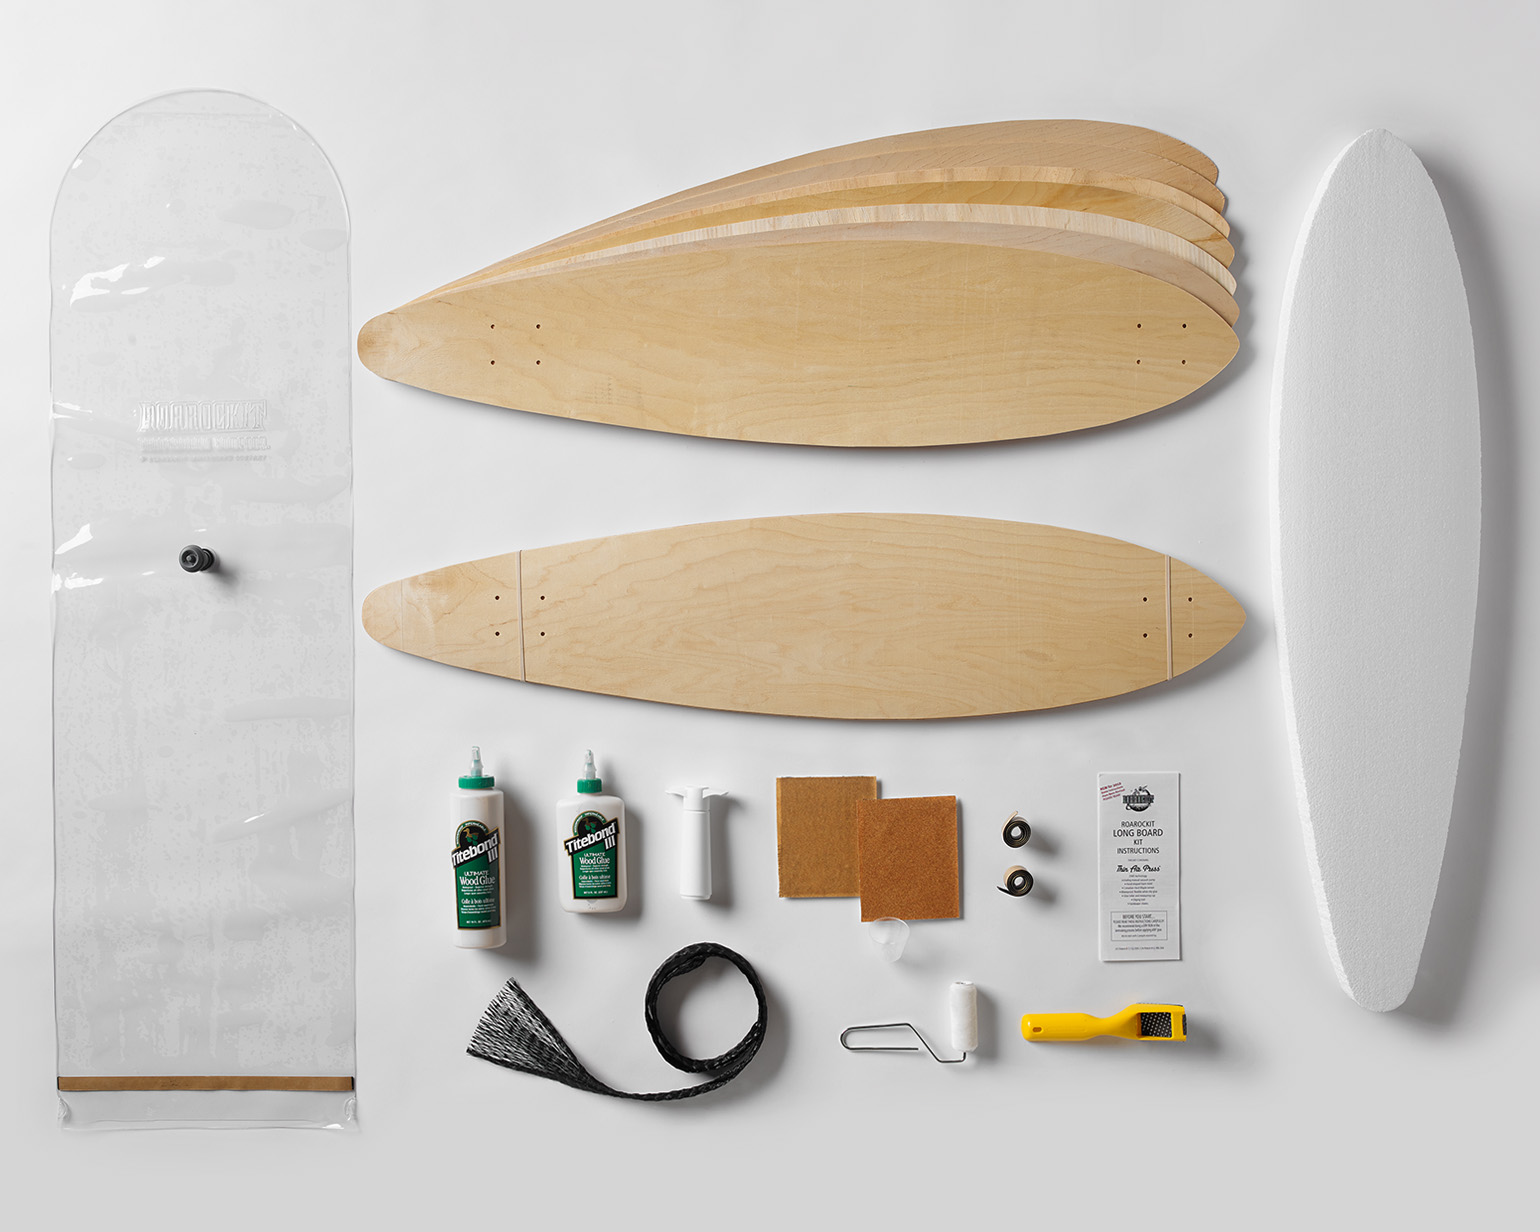 ptk02-pintail-double-kit-1540.jpg